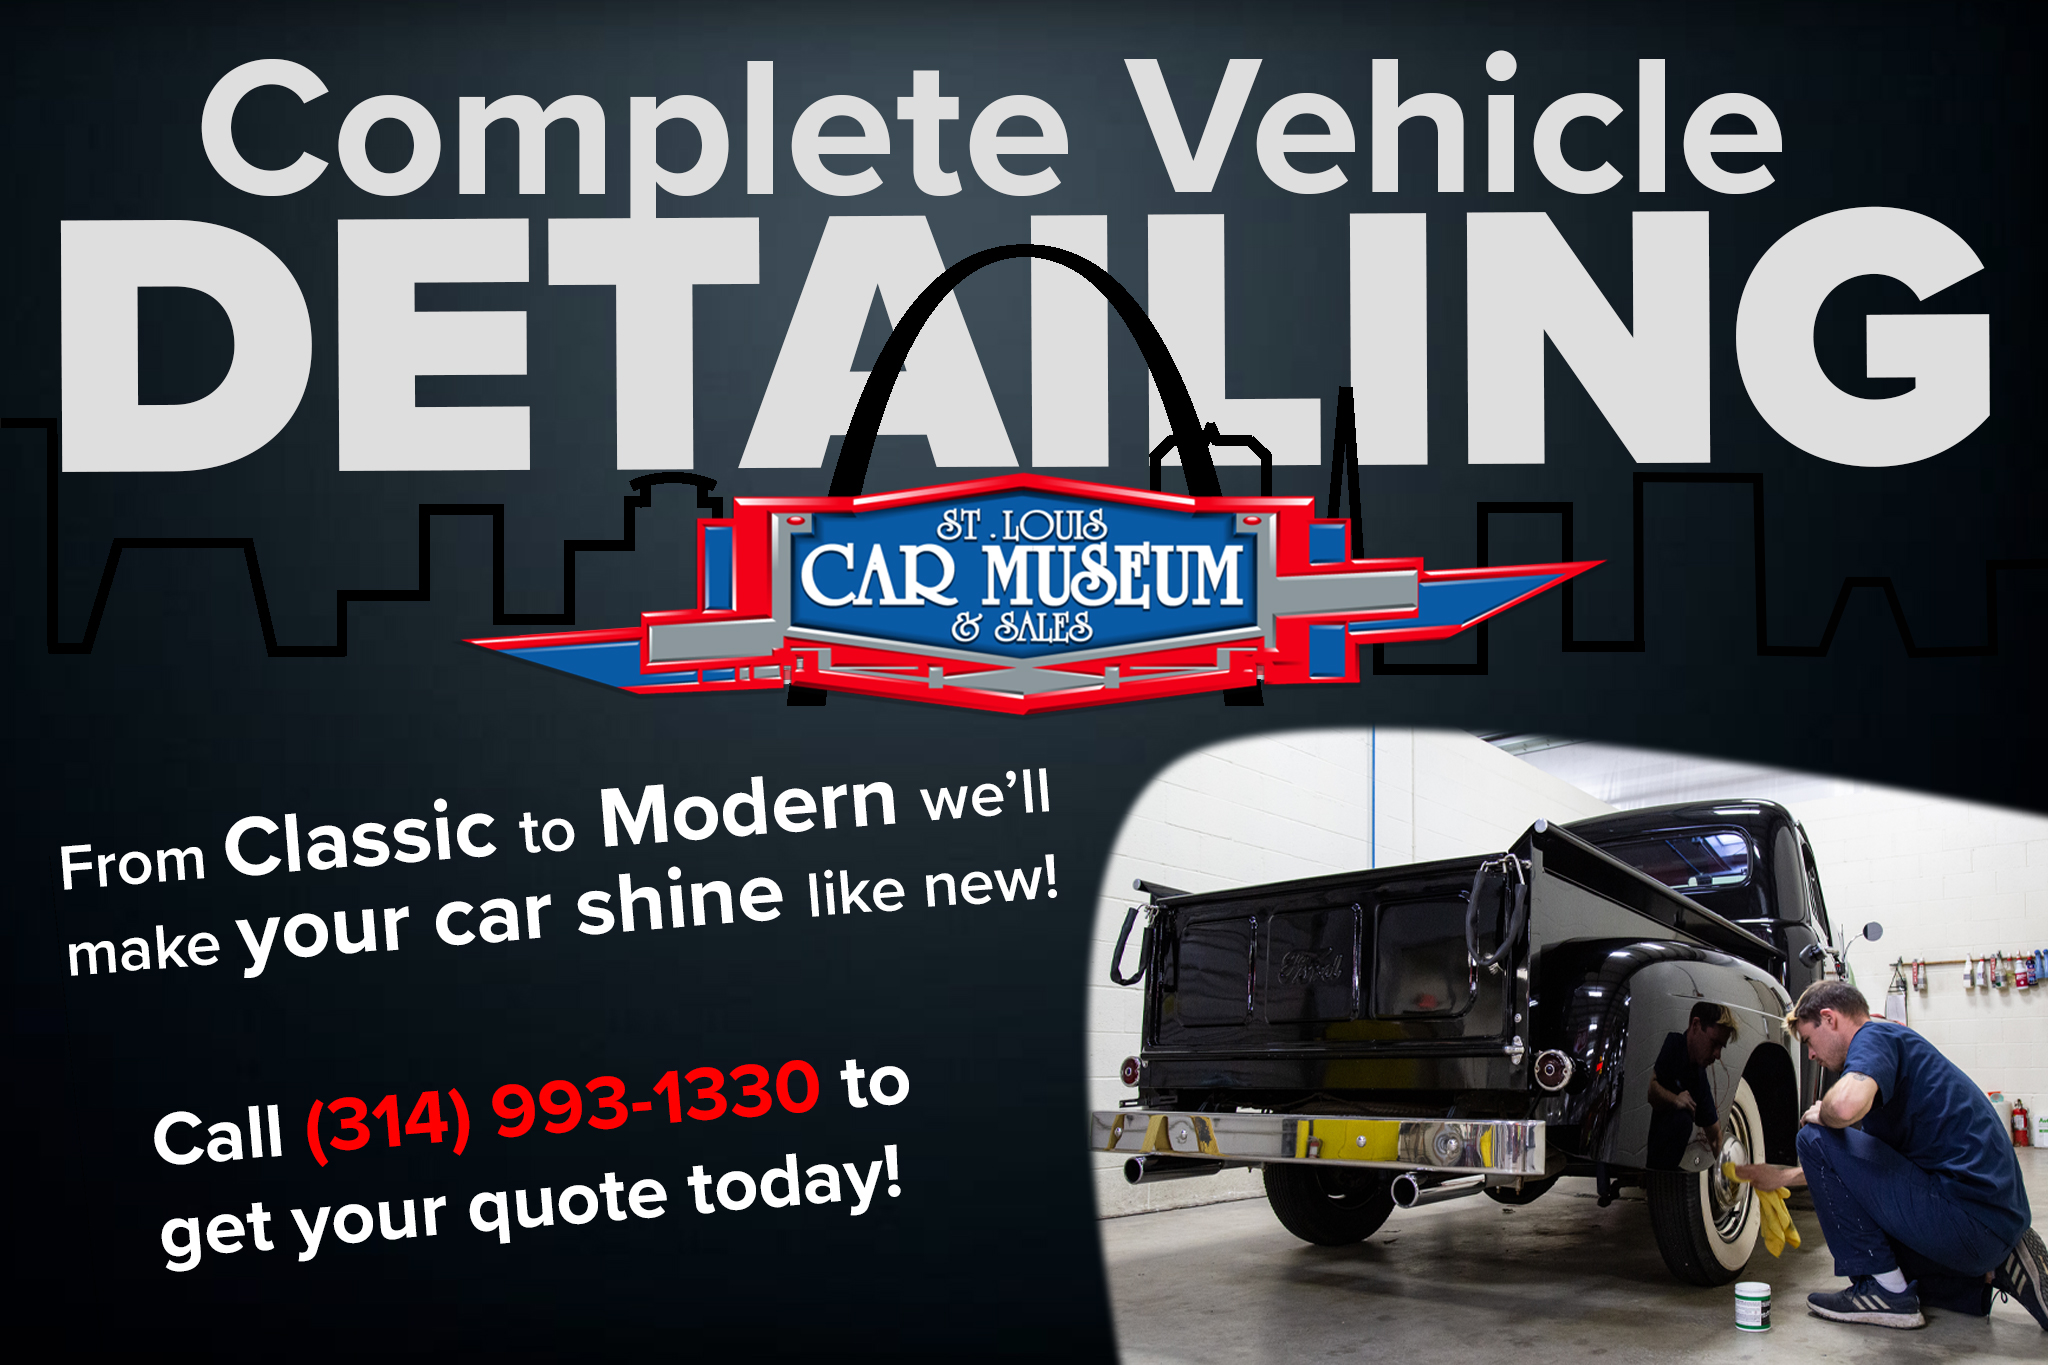 Vehicle Detailing Available at the St. Louis Car Museum